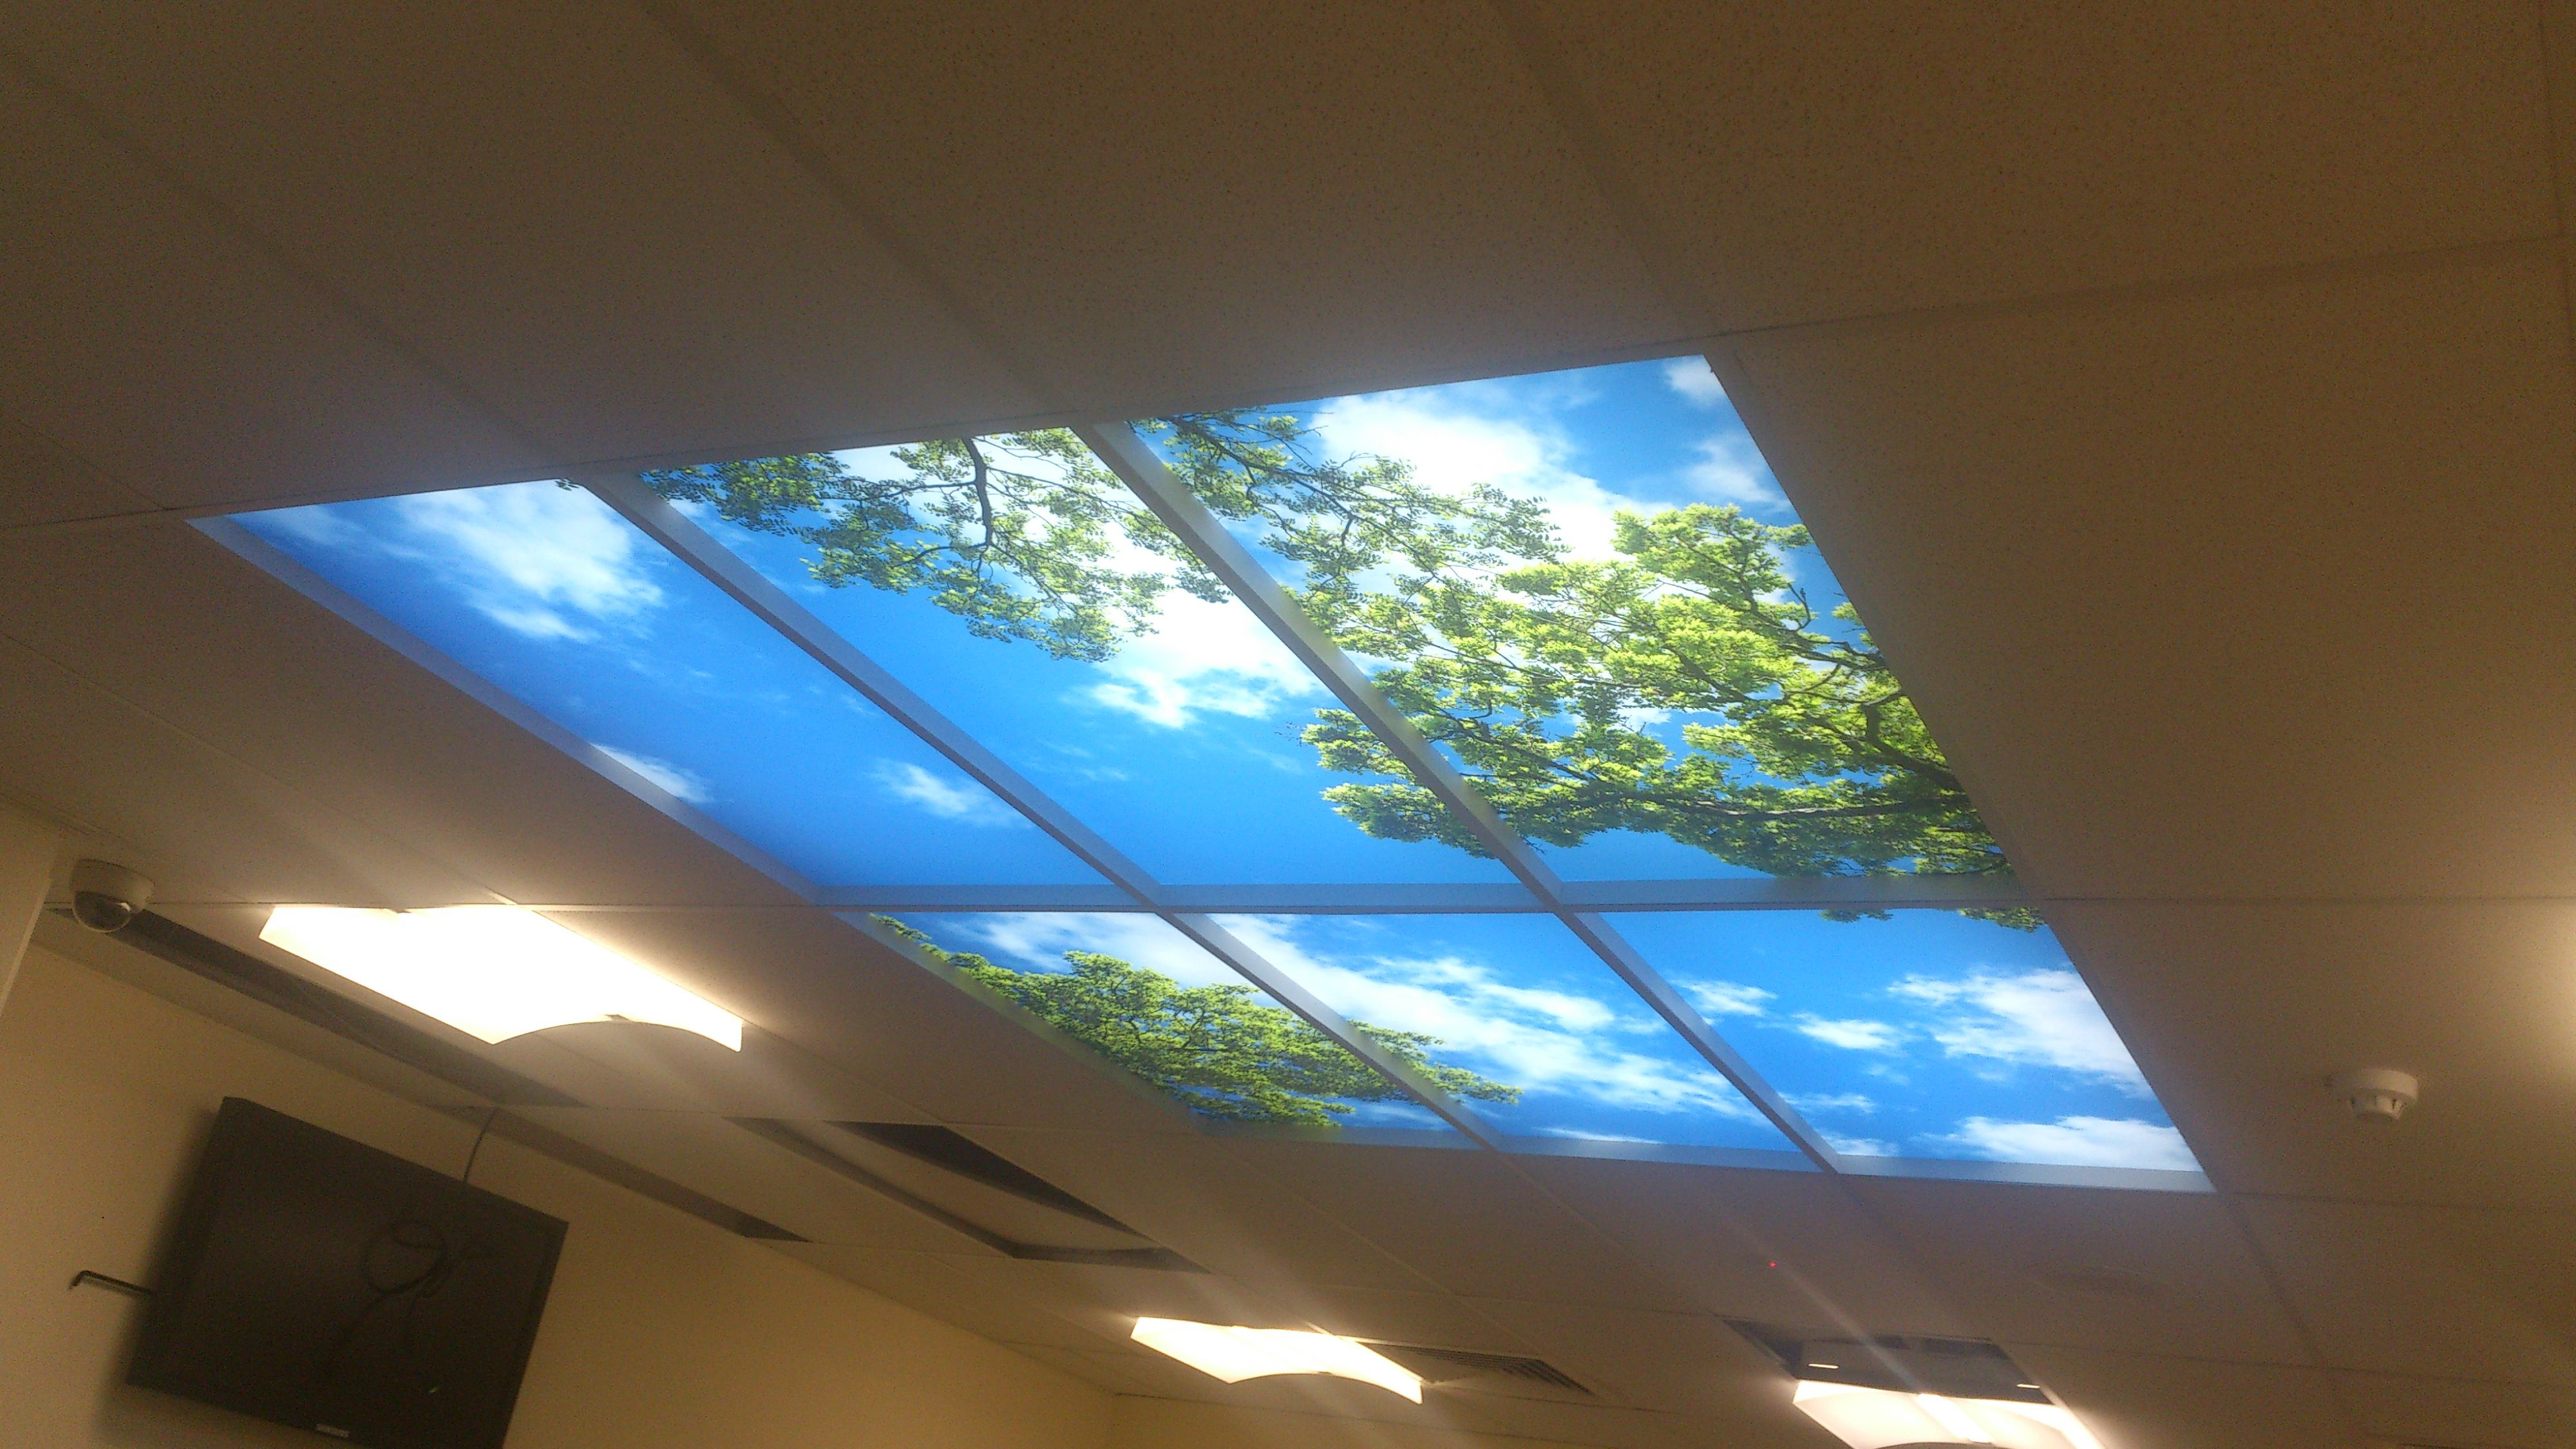 Lighted ceiling panels caboolture hospital emergency room lighted ceiling panels caboolture hospital emergency room mozeypictures Image collections